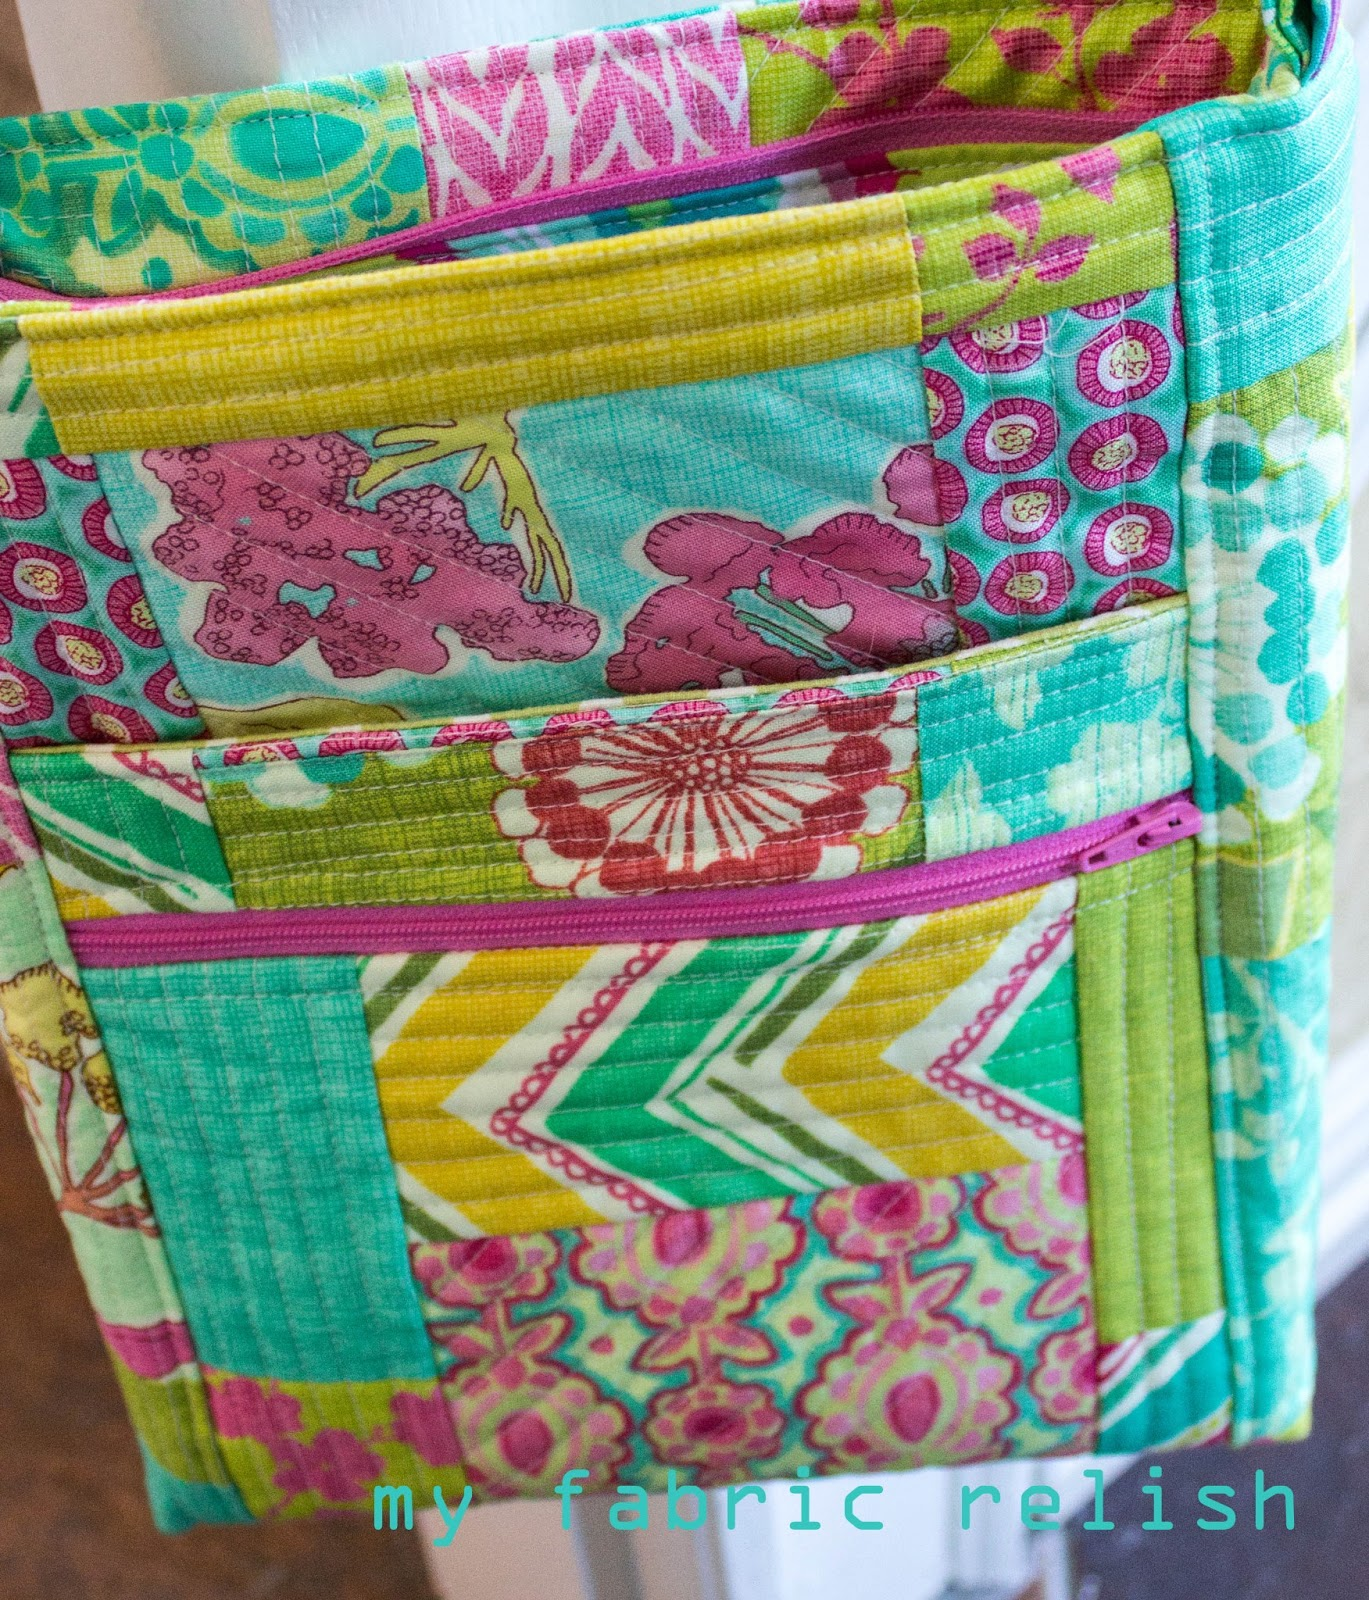 my fabric relish: quilted messenger bag